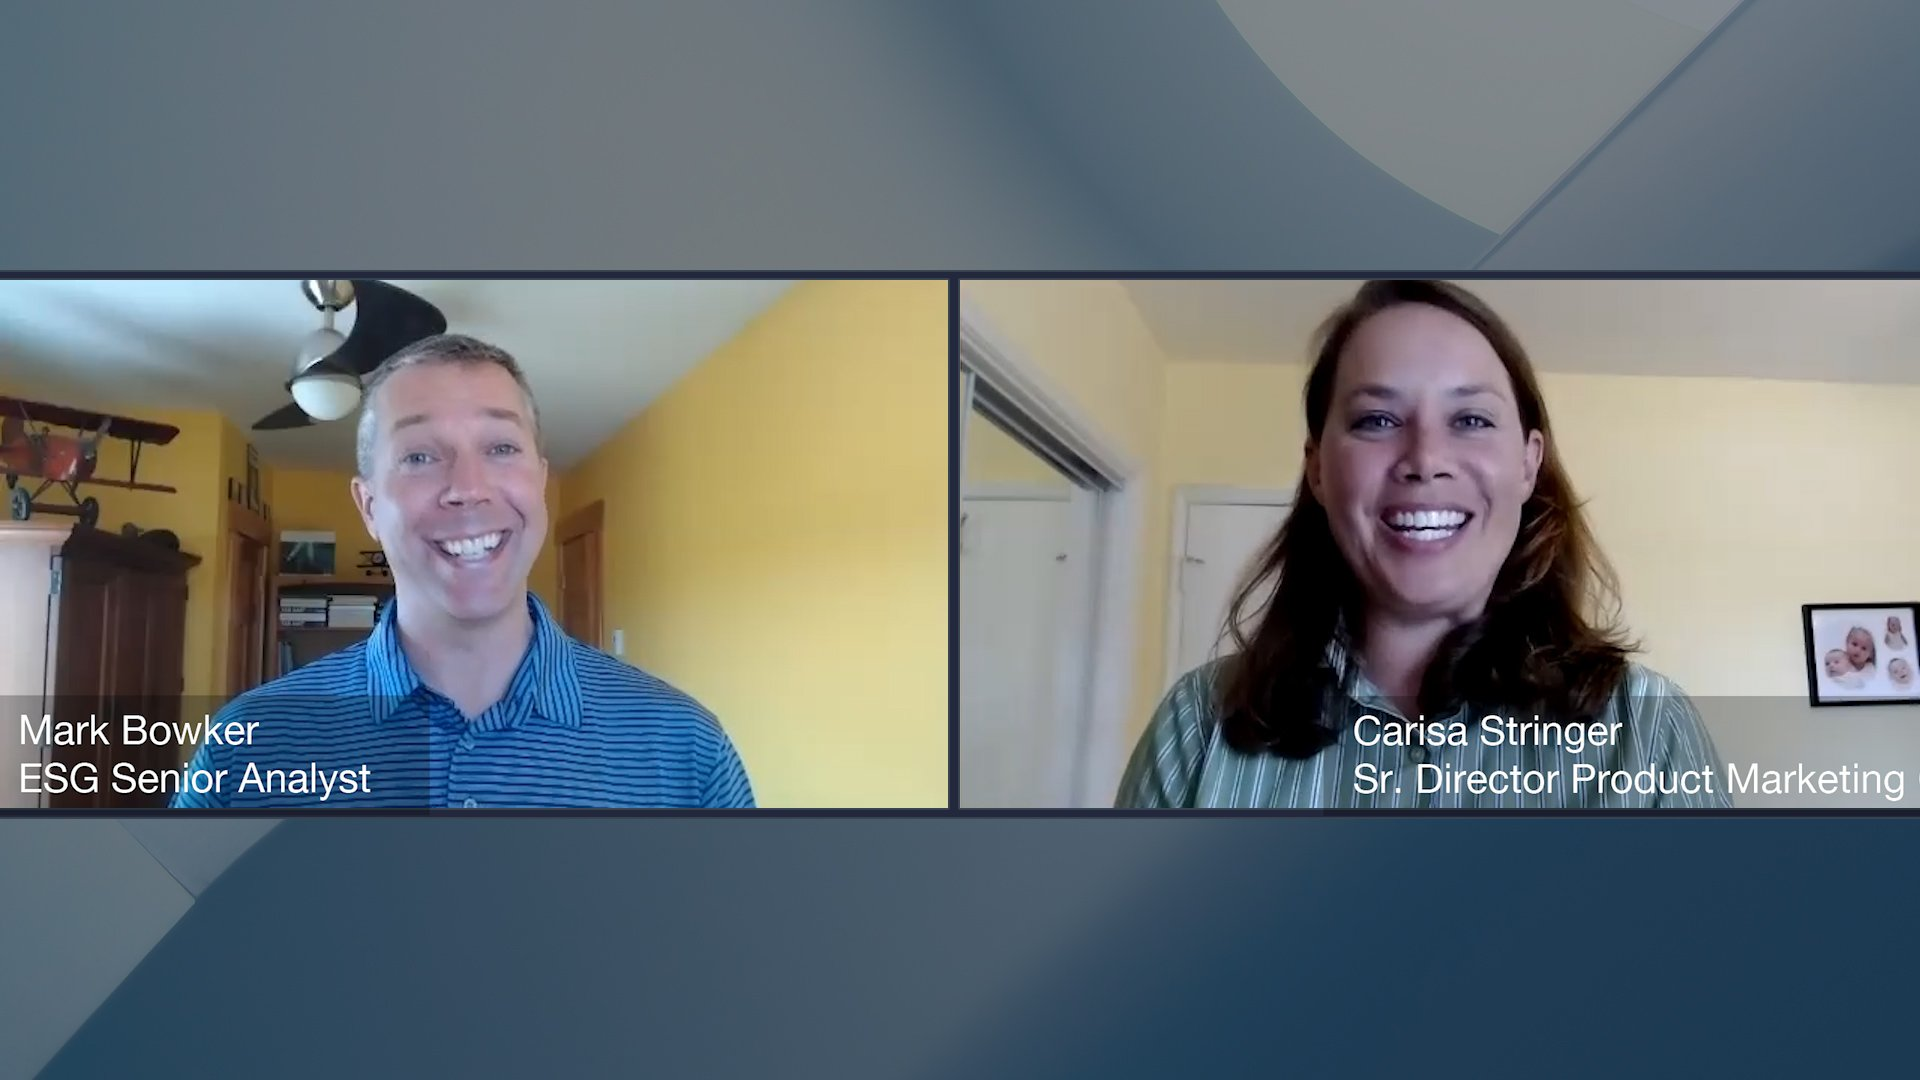 User Productivity Video with Carisa Stringer, Senior Director, Product Marketing at Citrix